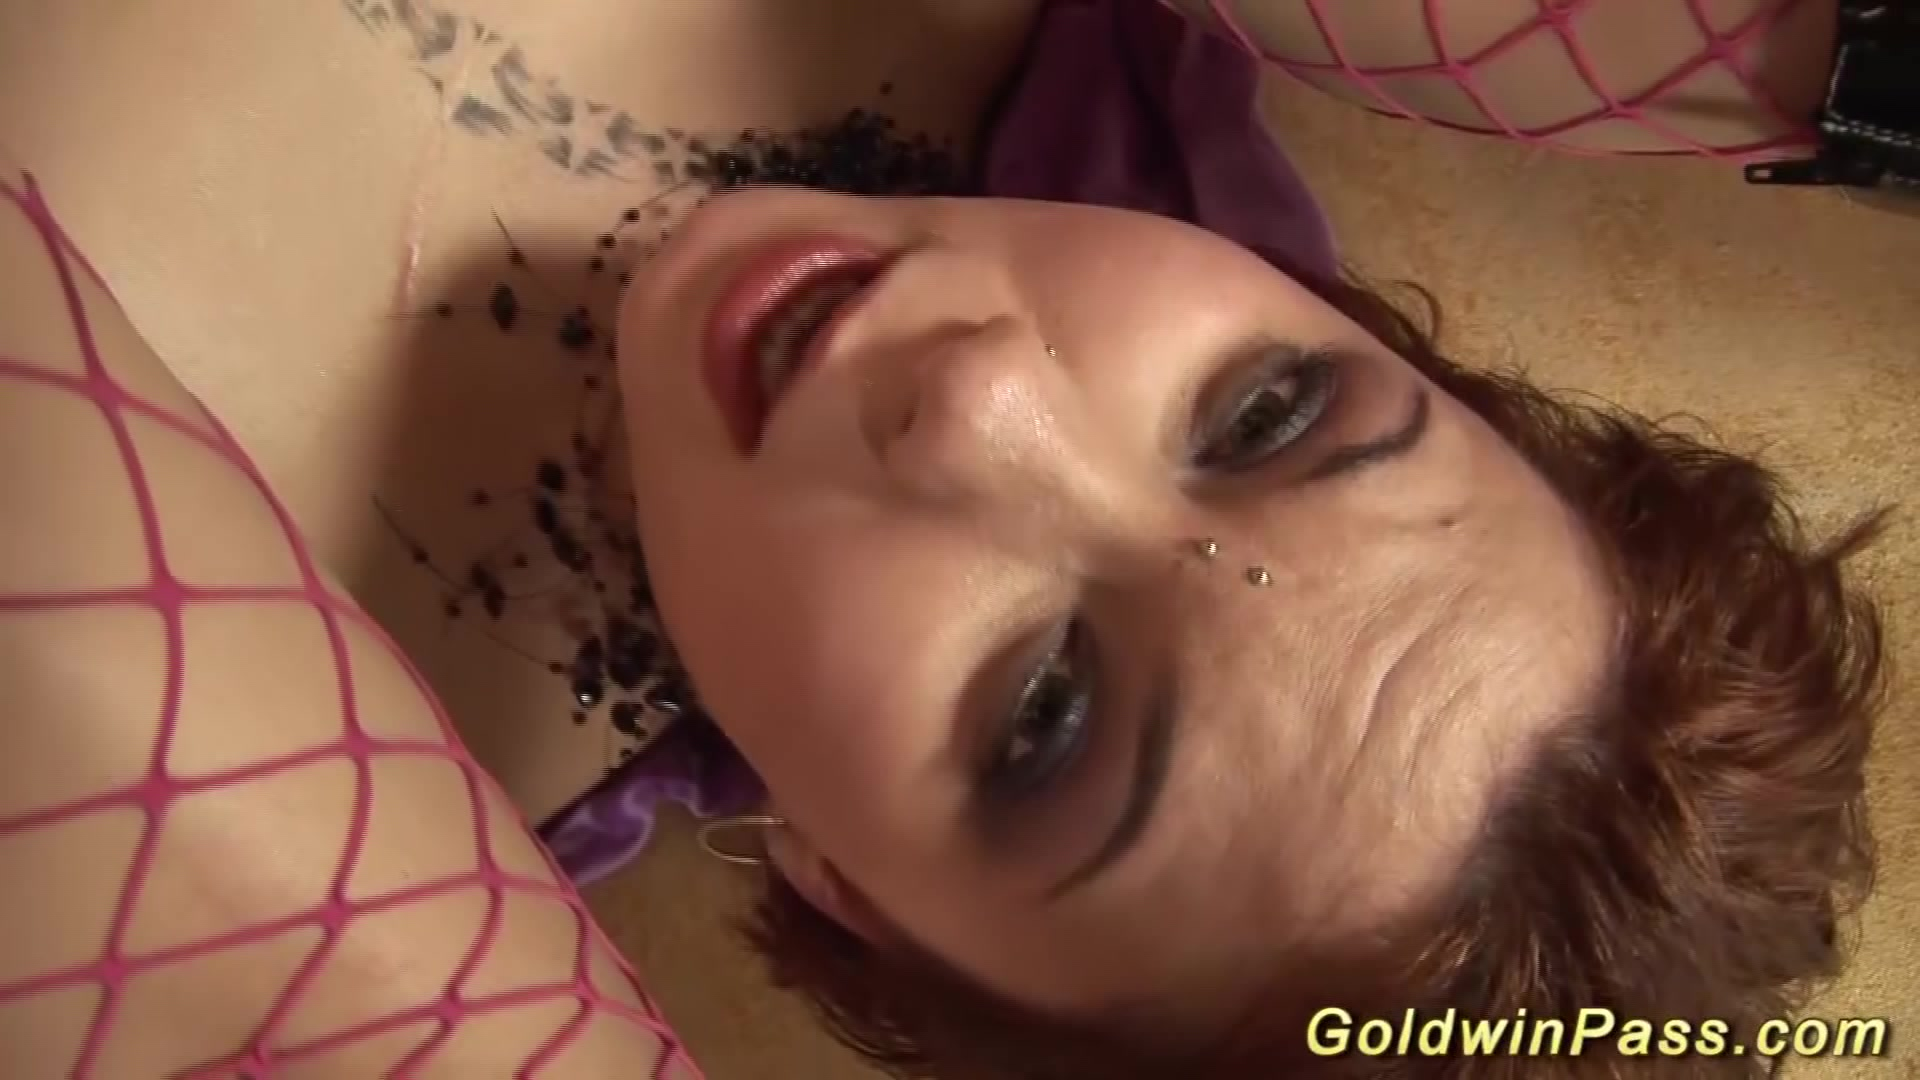 XXX pics Dating tips from eric andre net